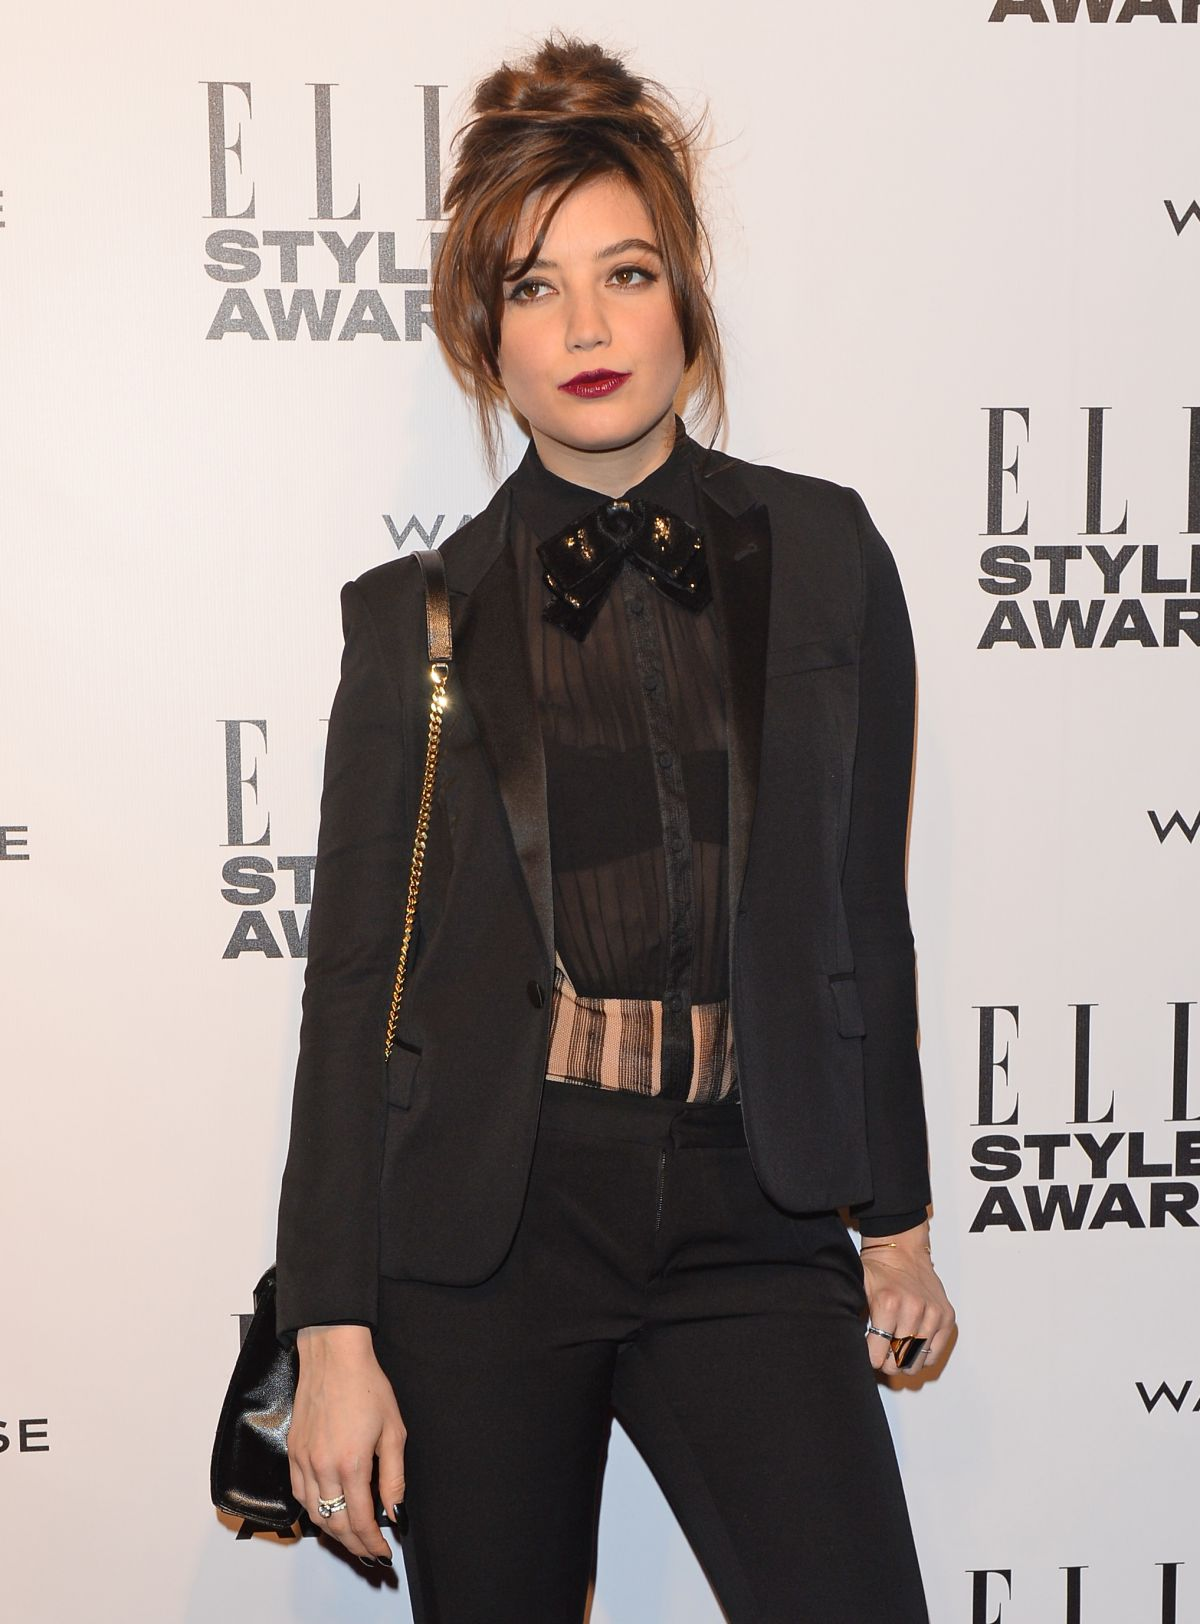 DAISY LOWE at 2014 Elle Style Awards in London